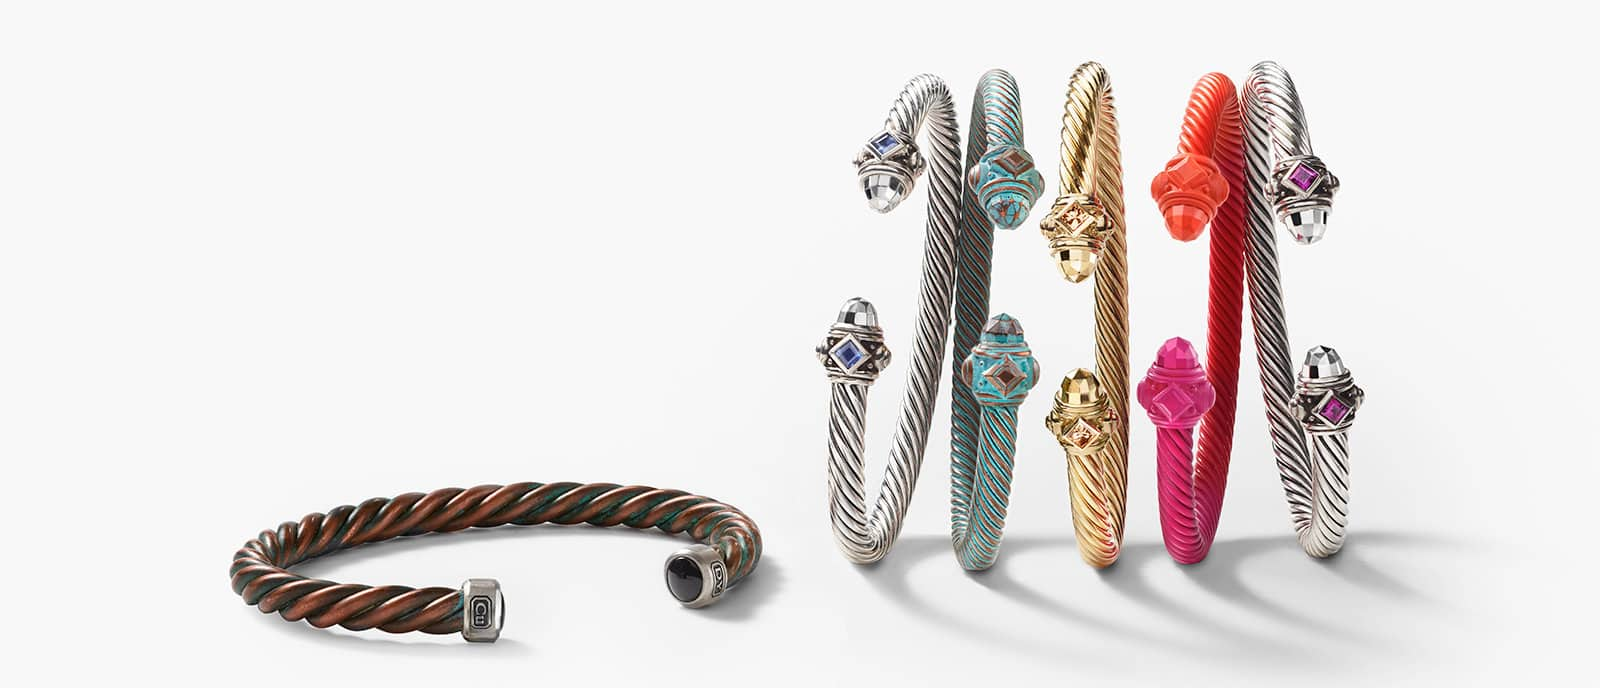 A color photograph of David Yurman men's Cable bracelet lying on the ground next to a horizontal stack of women's Renaissance Collection bracelets in reddish-brown copper, sterling silver, greenish copper, gold or orange-pink aluminum with colored gemstones.